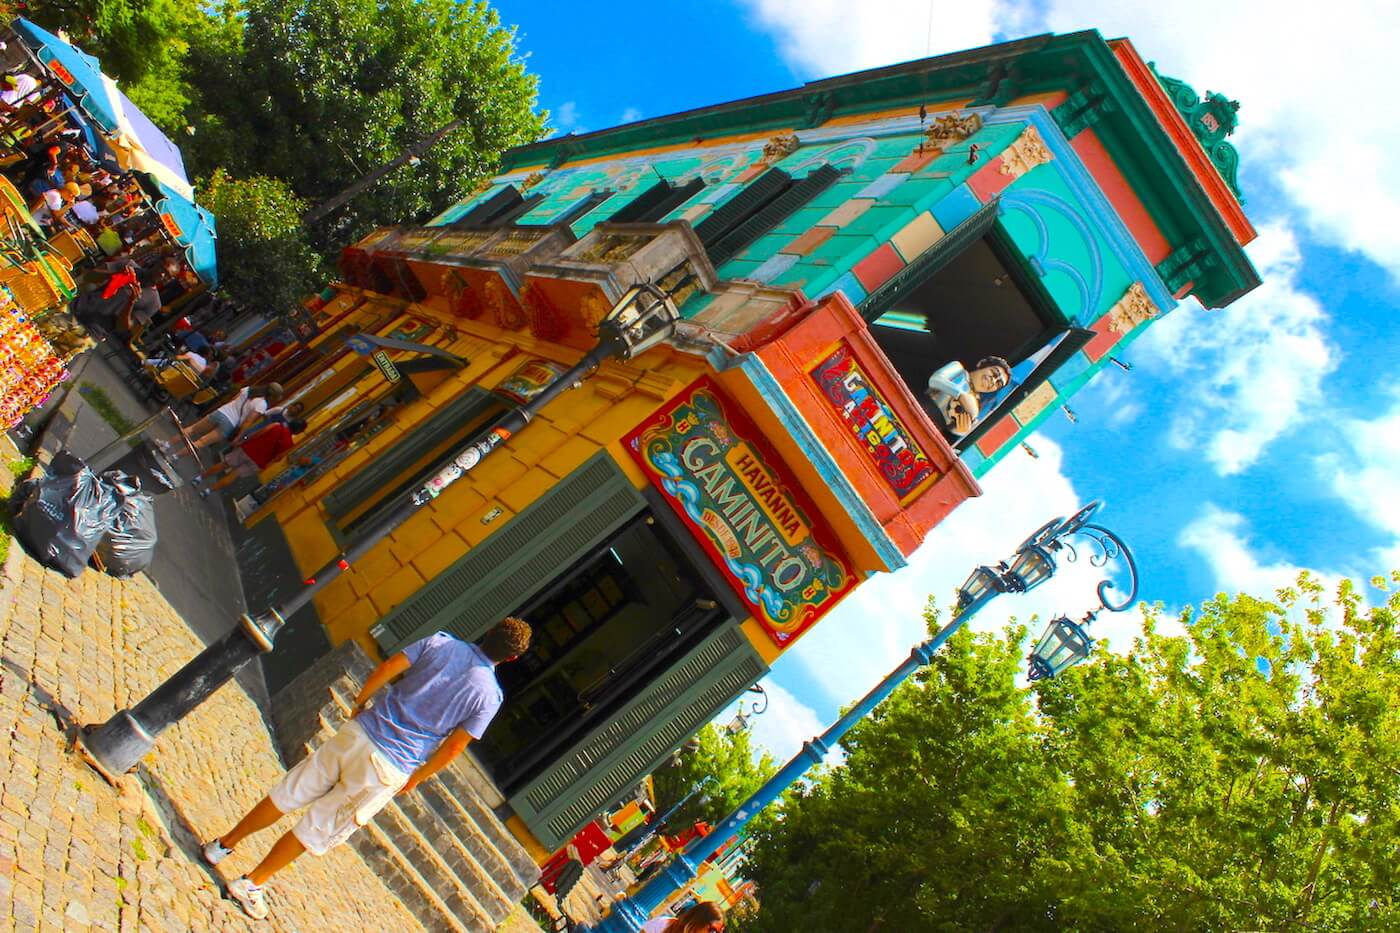 buenos aires caminito colourful building